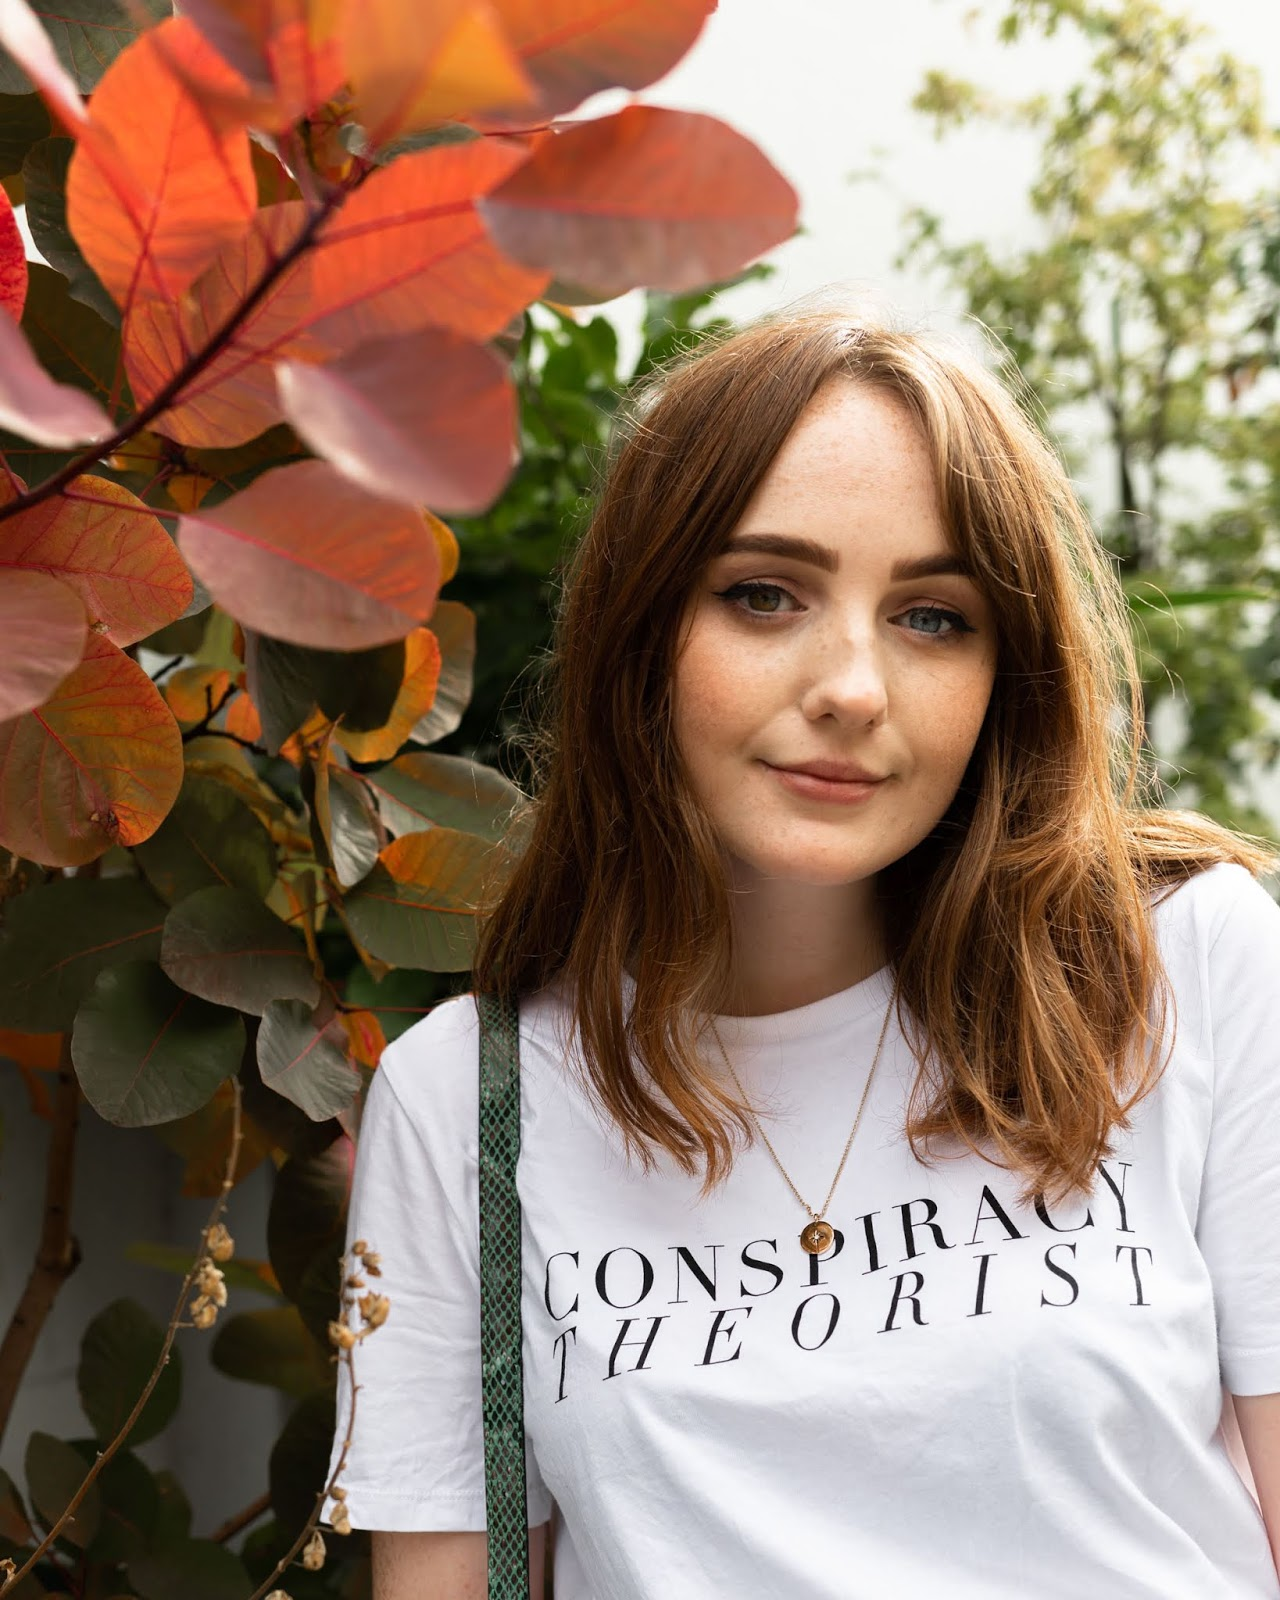 style blogger allie davies wearing white t shirt with 'conspiracy theorist' slogan t-shirt